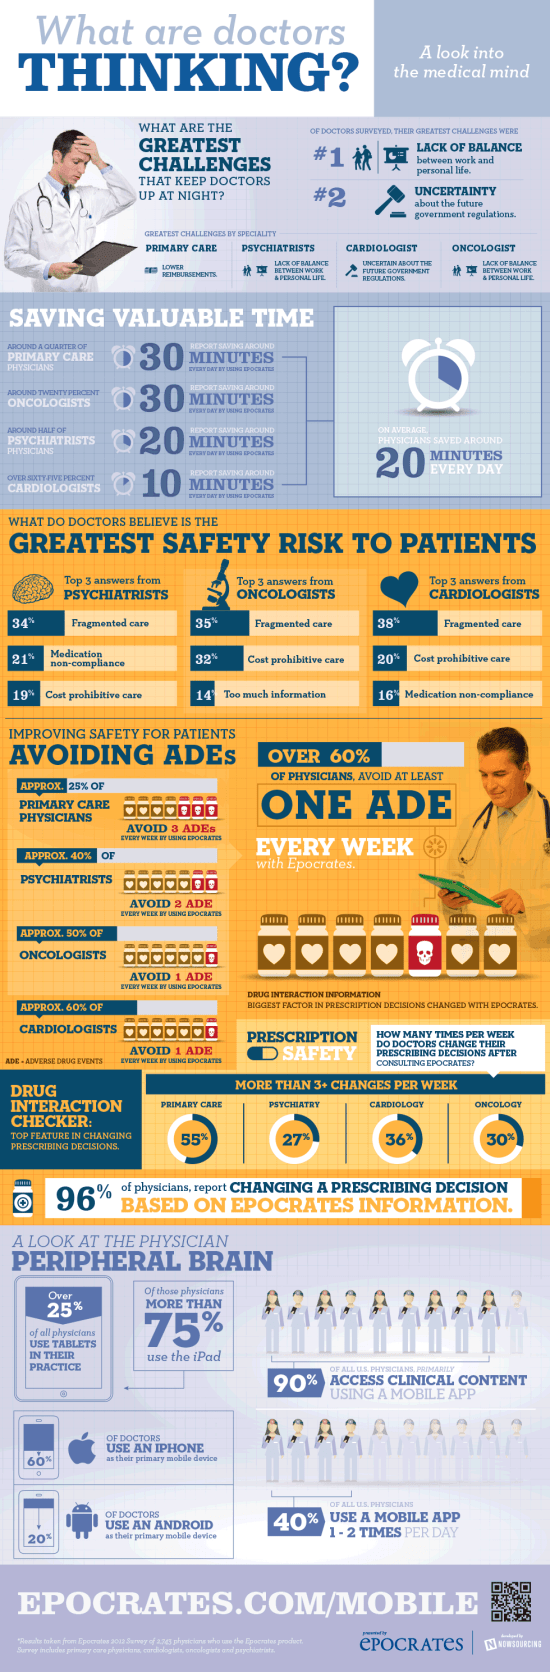 2012 Epocrates Specialty Survey [Infographic]